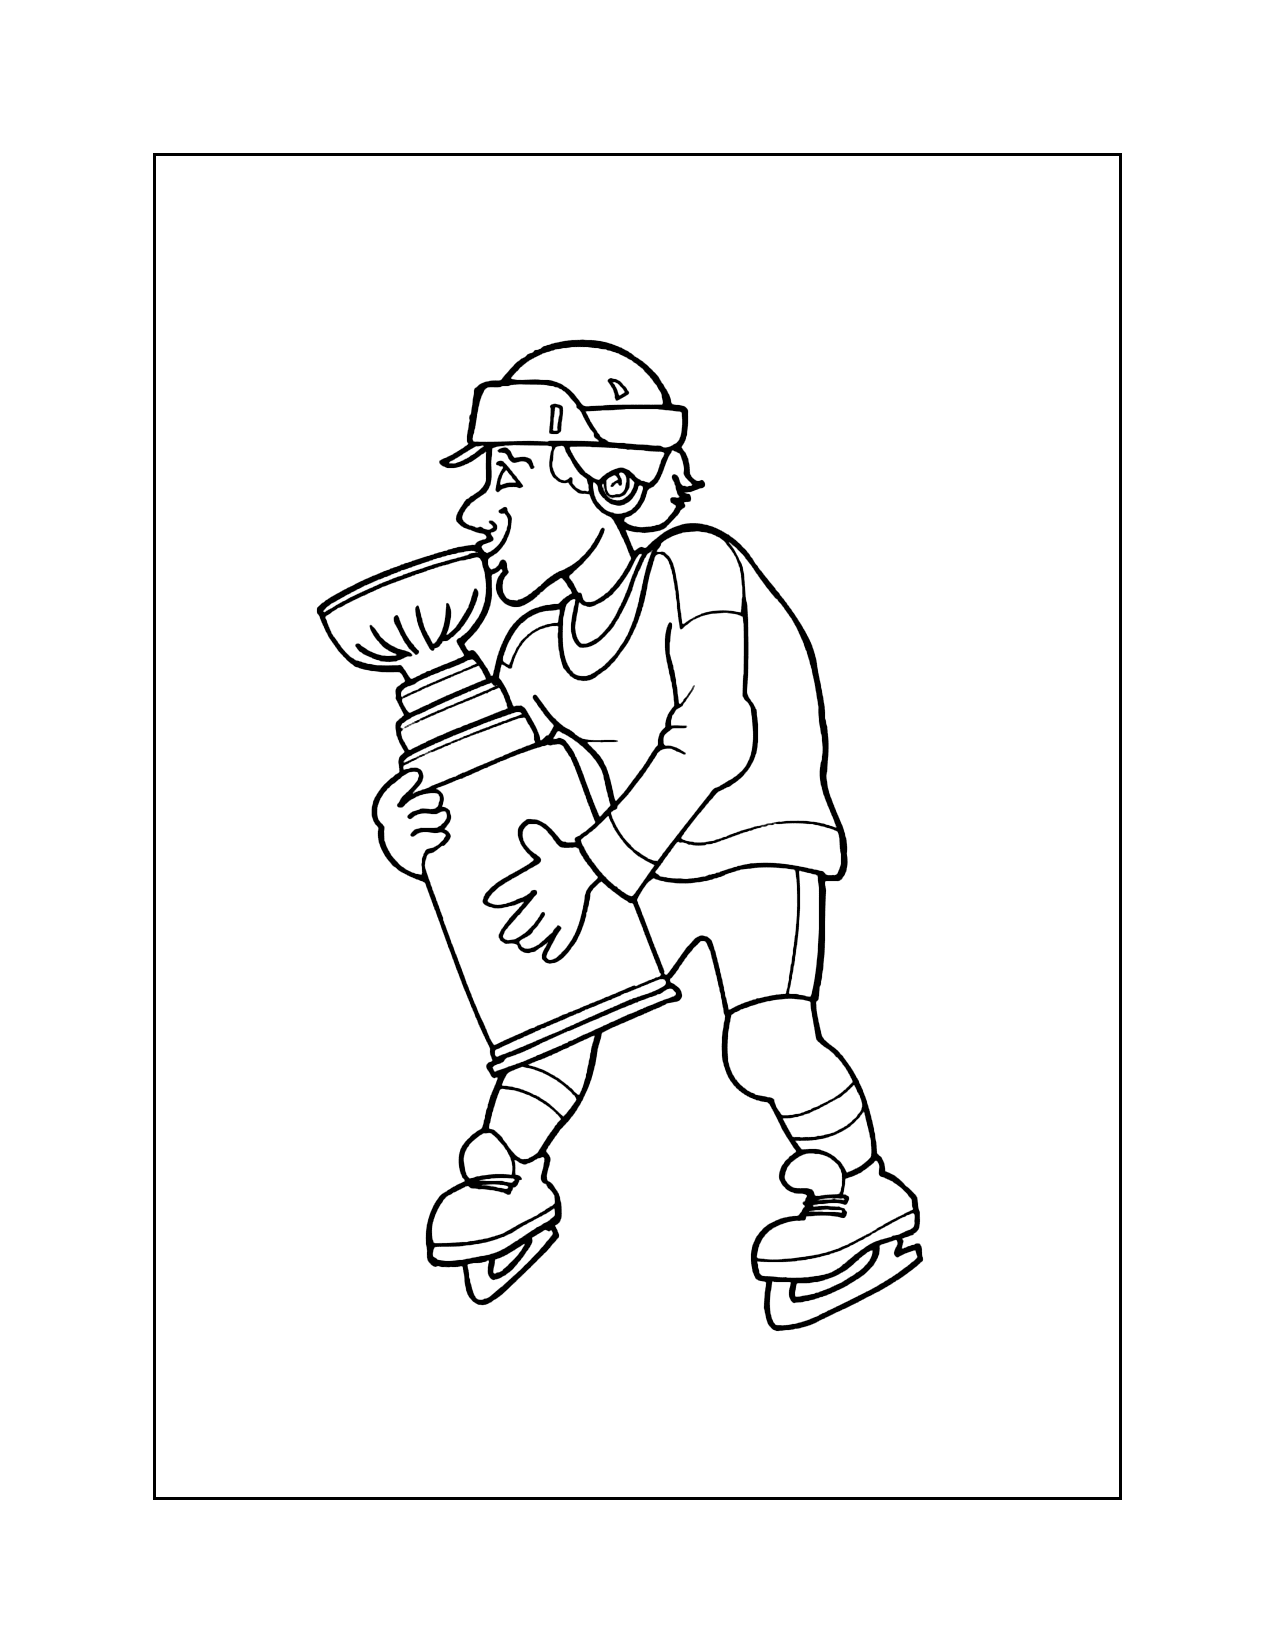 Hockey Cup Coloring Page